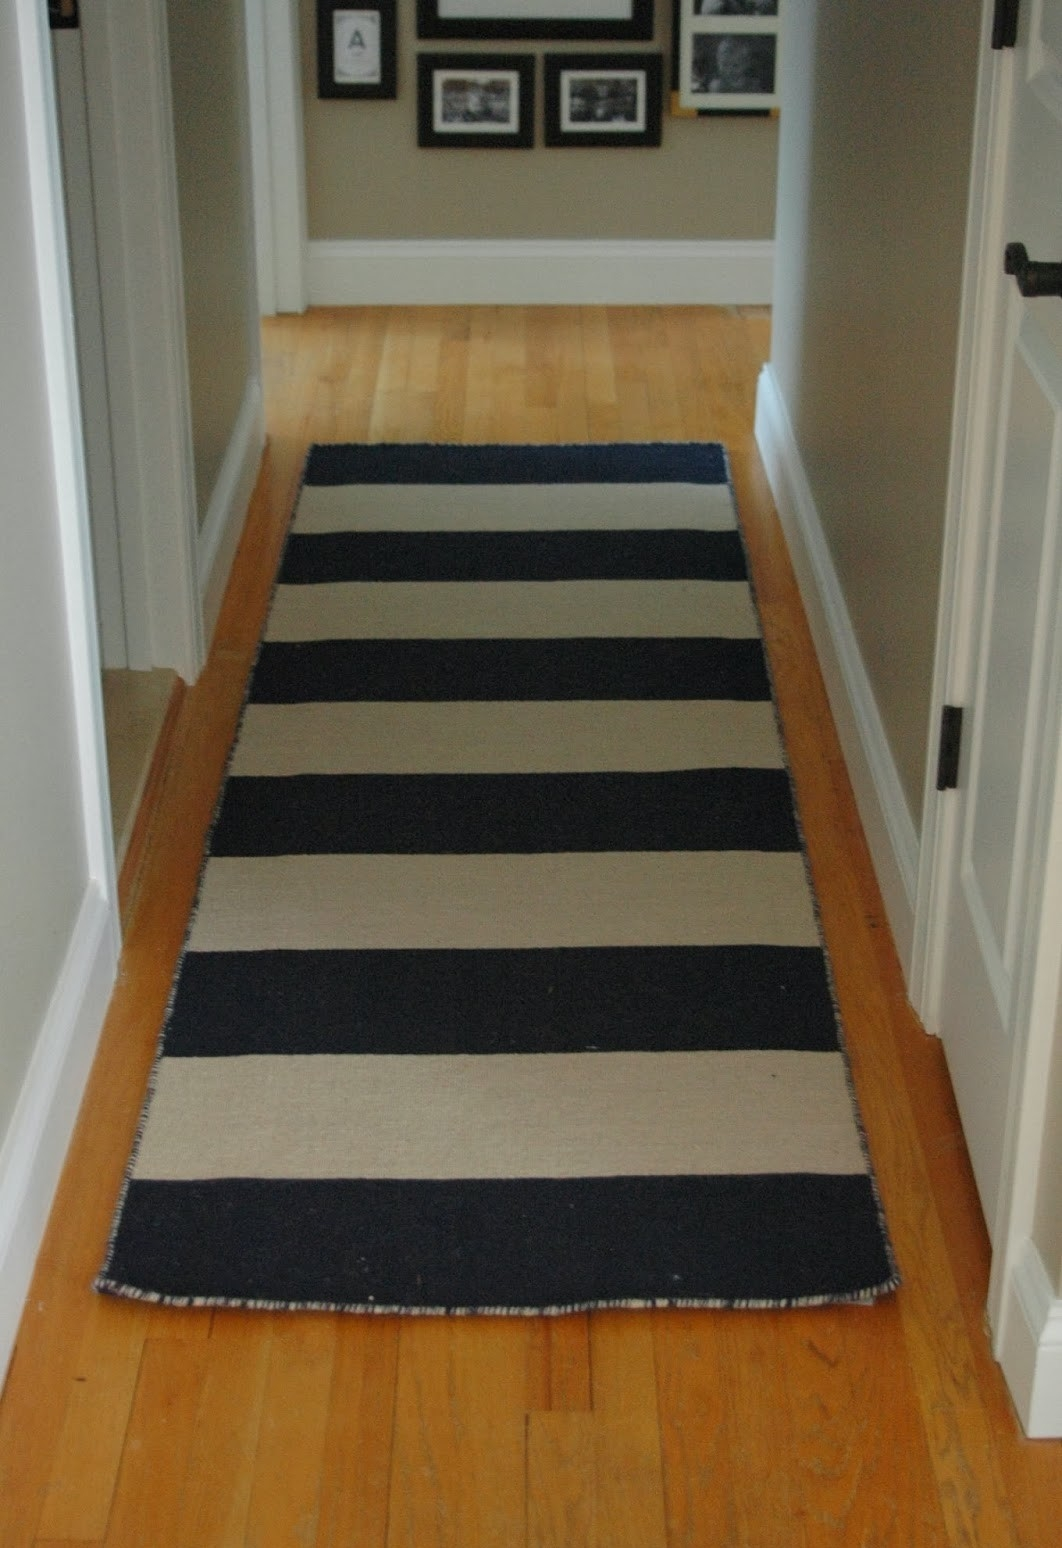 Black And White Striped Runner Rug Creative Rugs Decoration Intended For Runner Rugs For Hallway (#8 of 20)